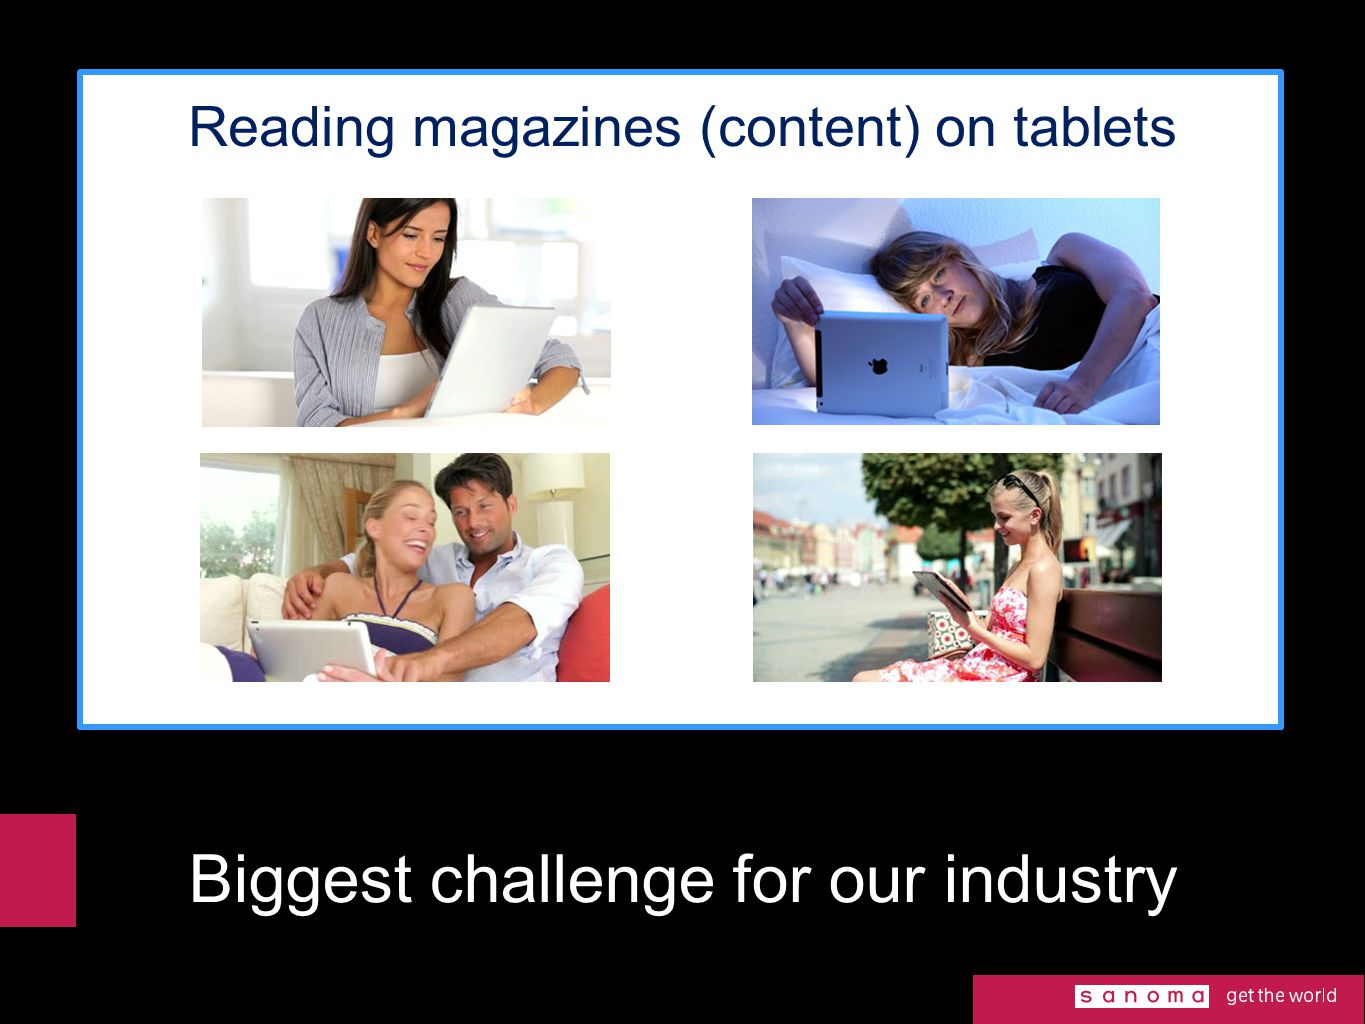 Biggest challenge for our industry Reading magazines (content) on tablets